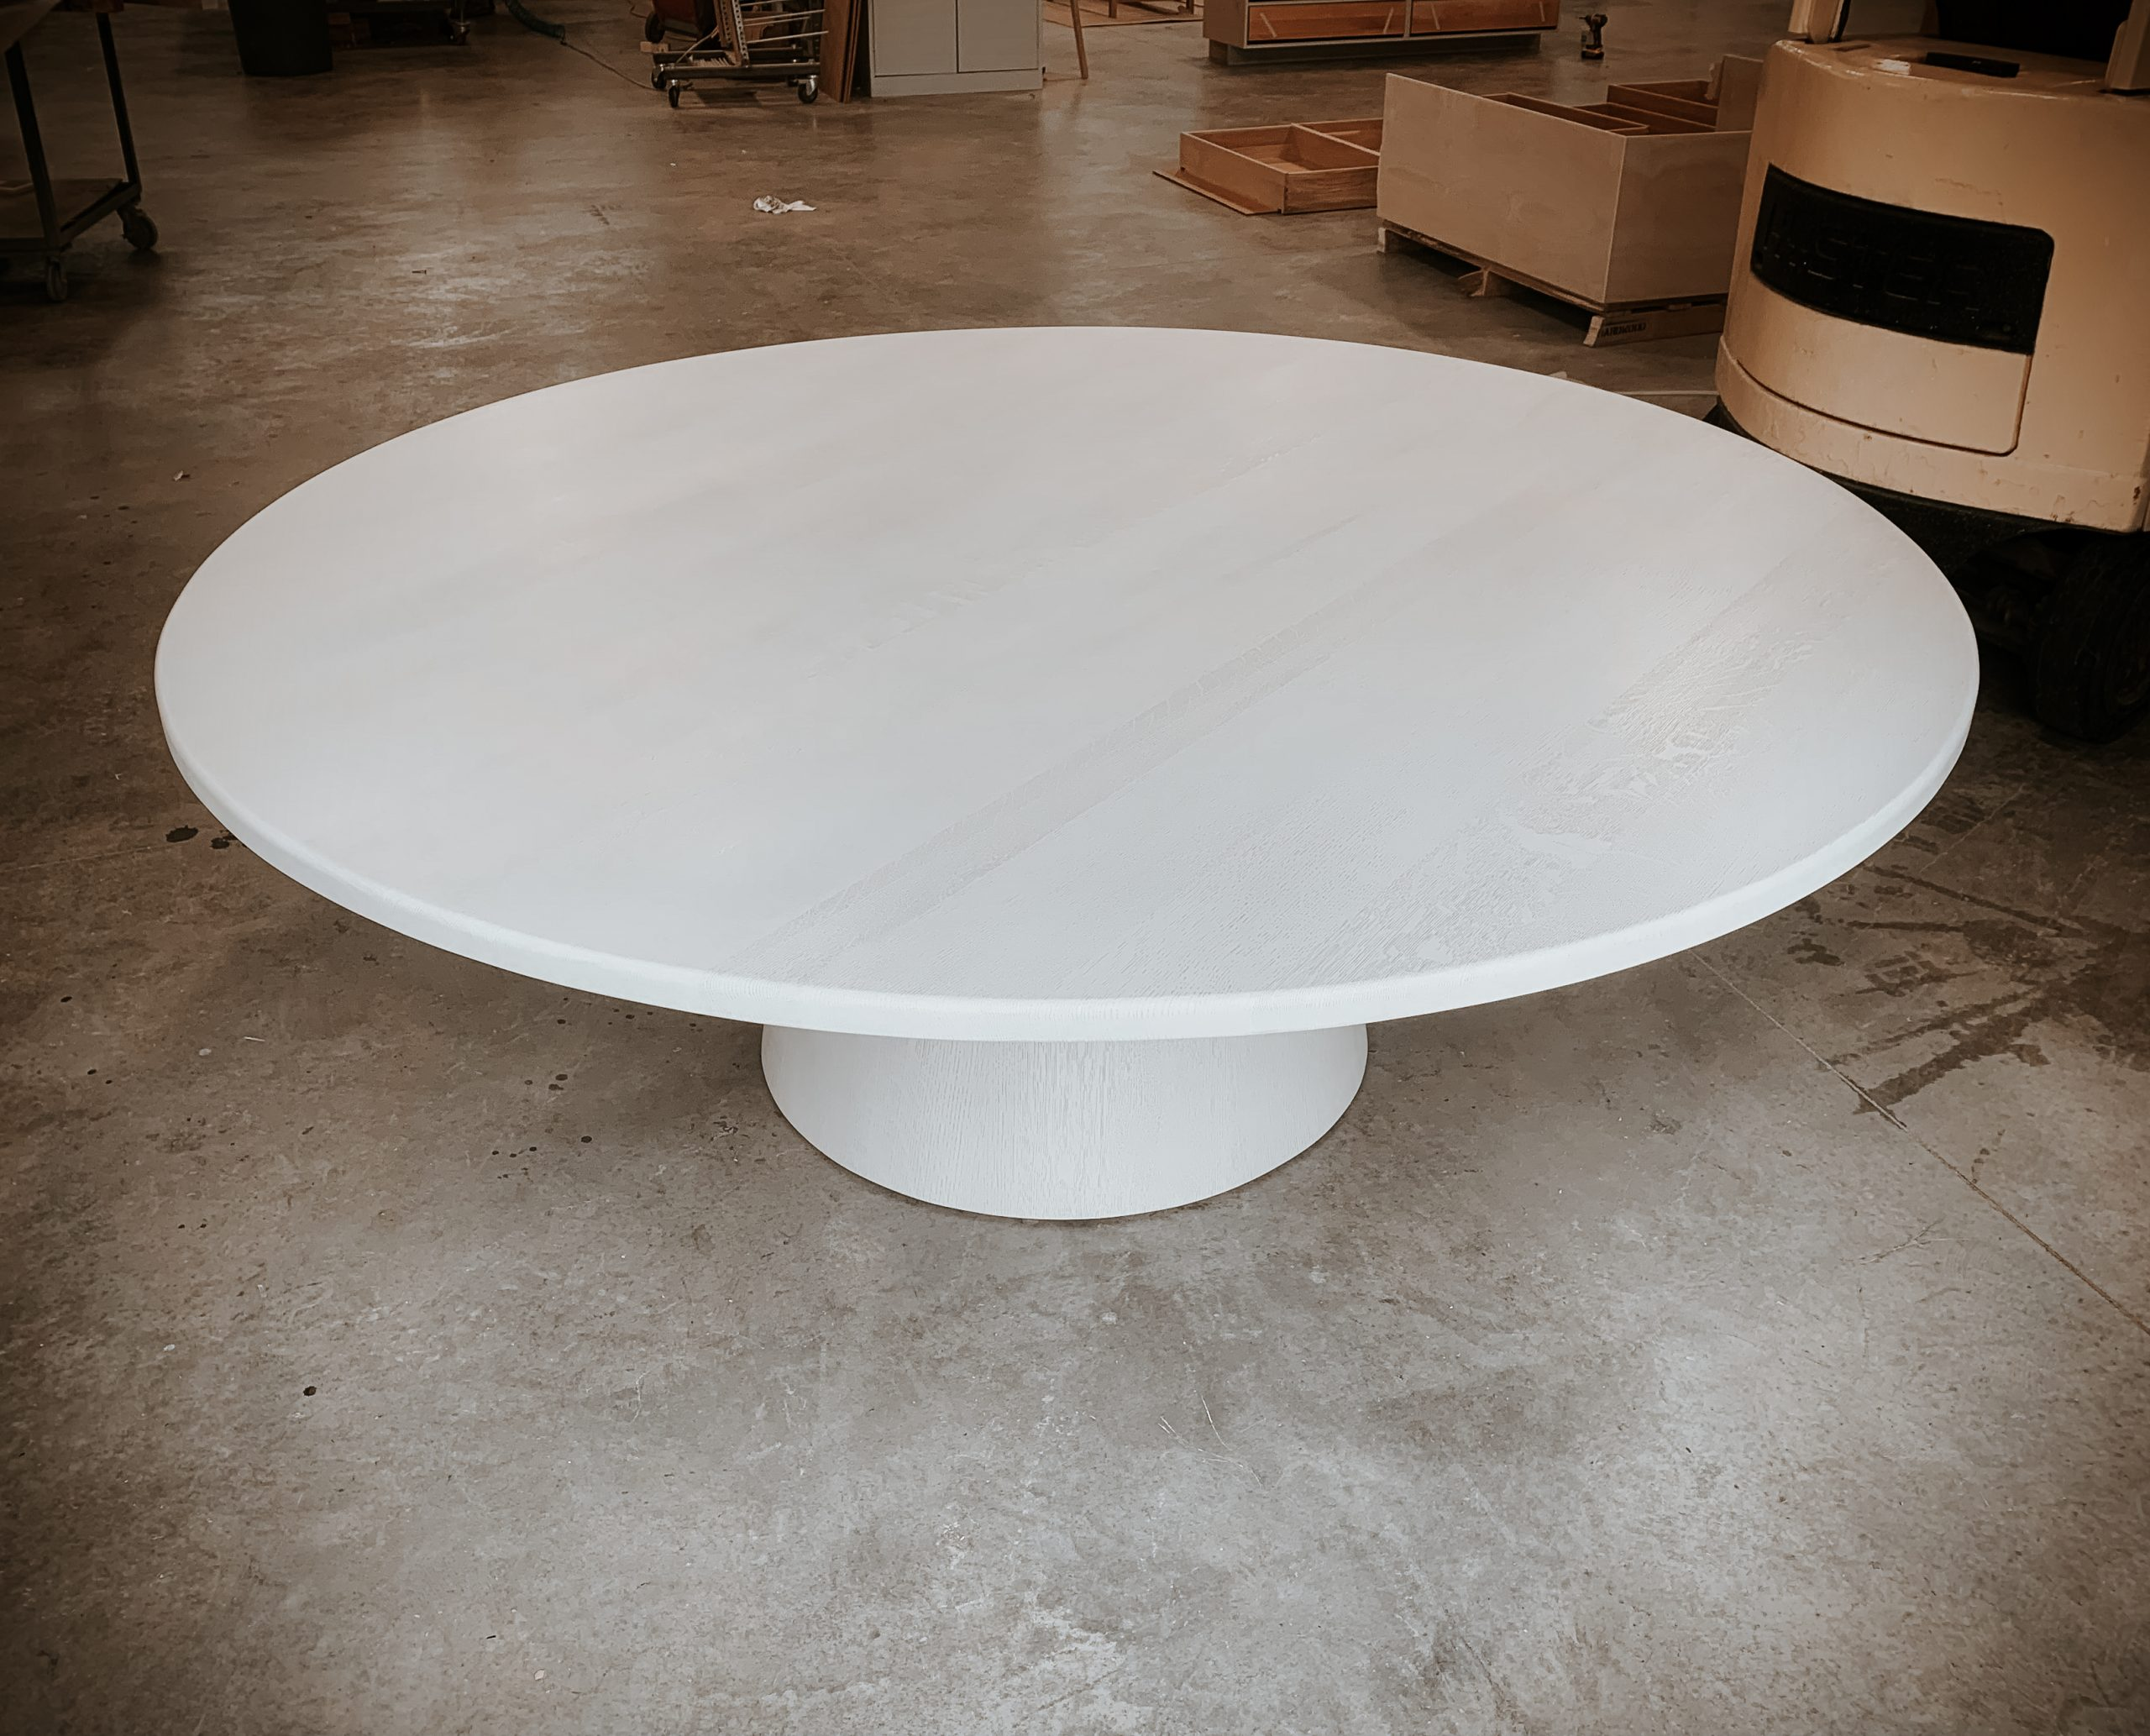 Top of Ghost White Dining Table